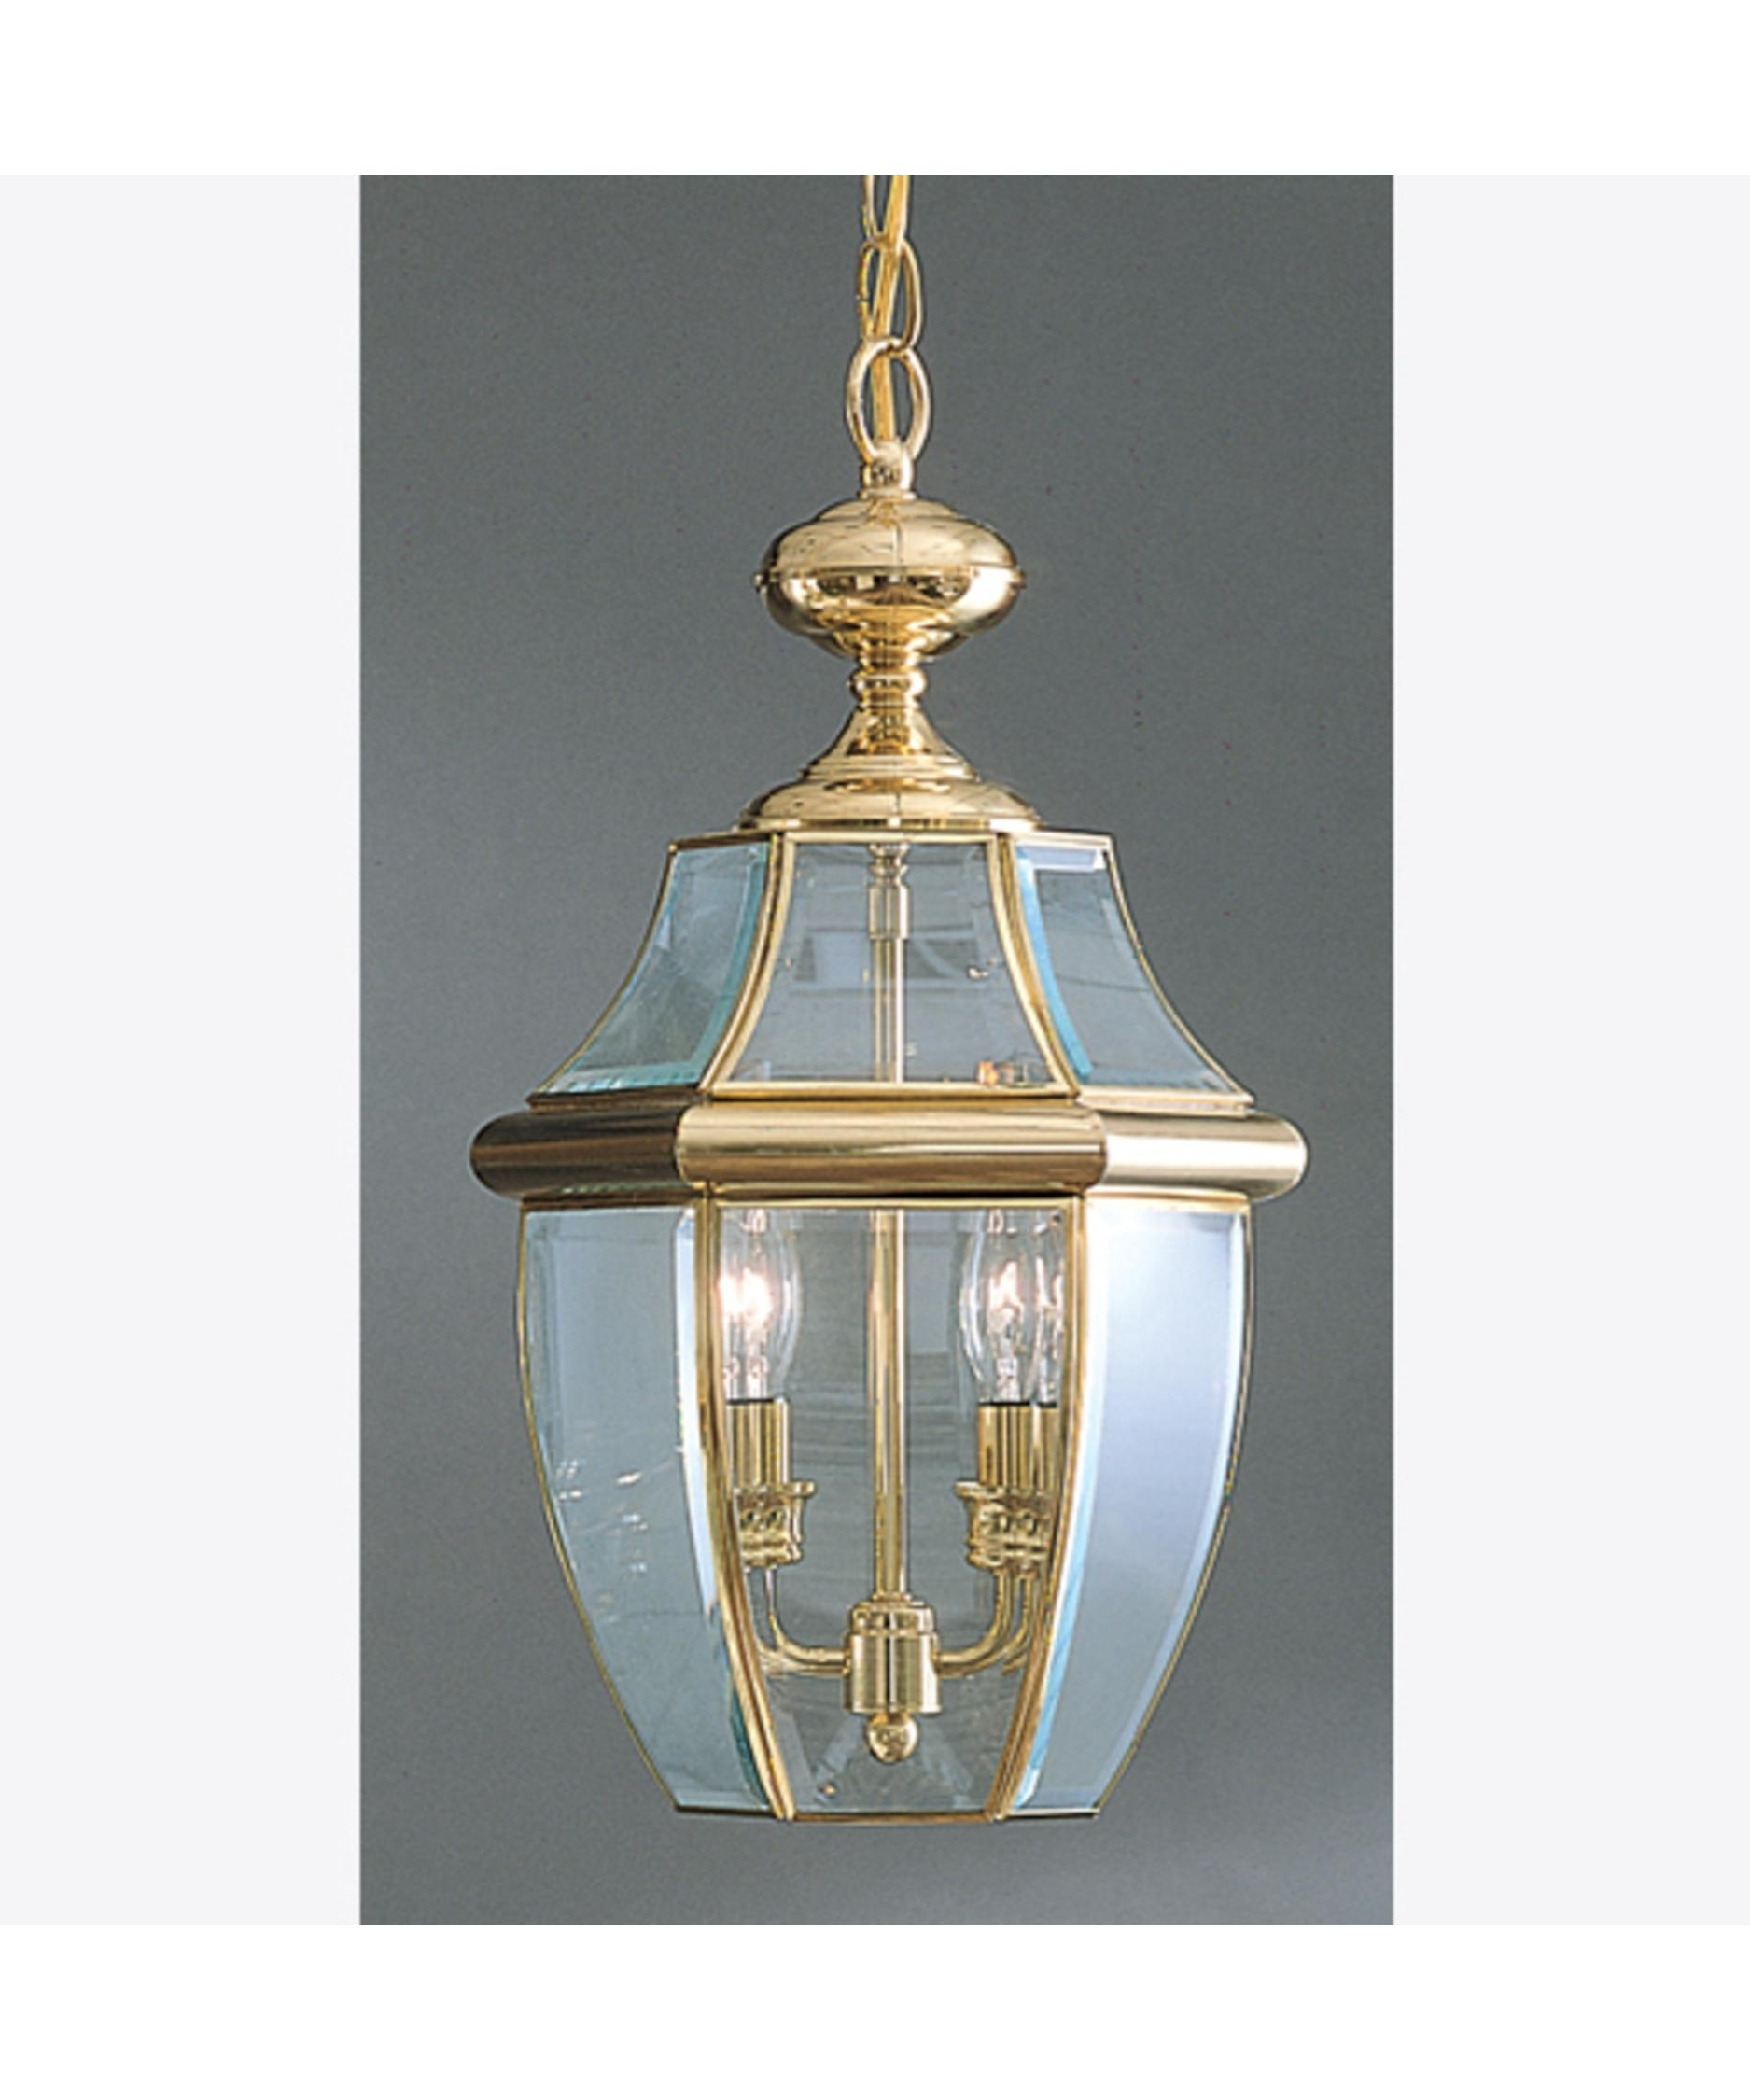 Recent Quoizel Outdoor Hanging Lights Pertaining To Quoizel Ny1178 Newbury 10 Inch Wide 2 Light Outdoor Hanging Lantern (View 10 of 20)